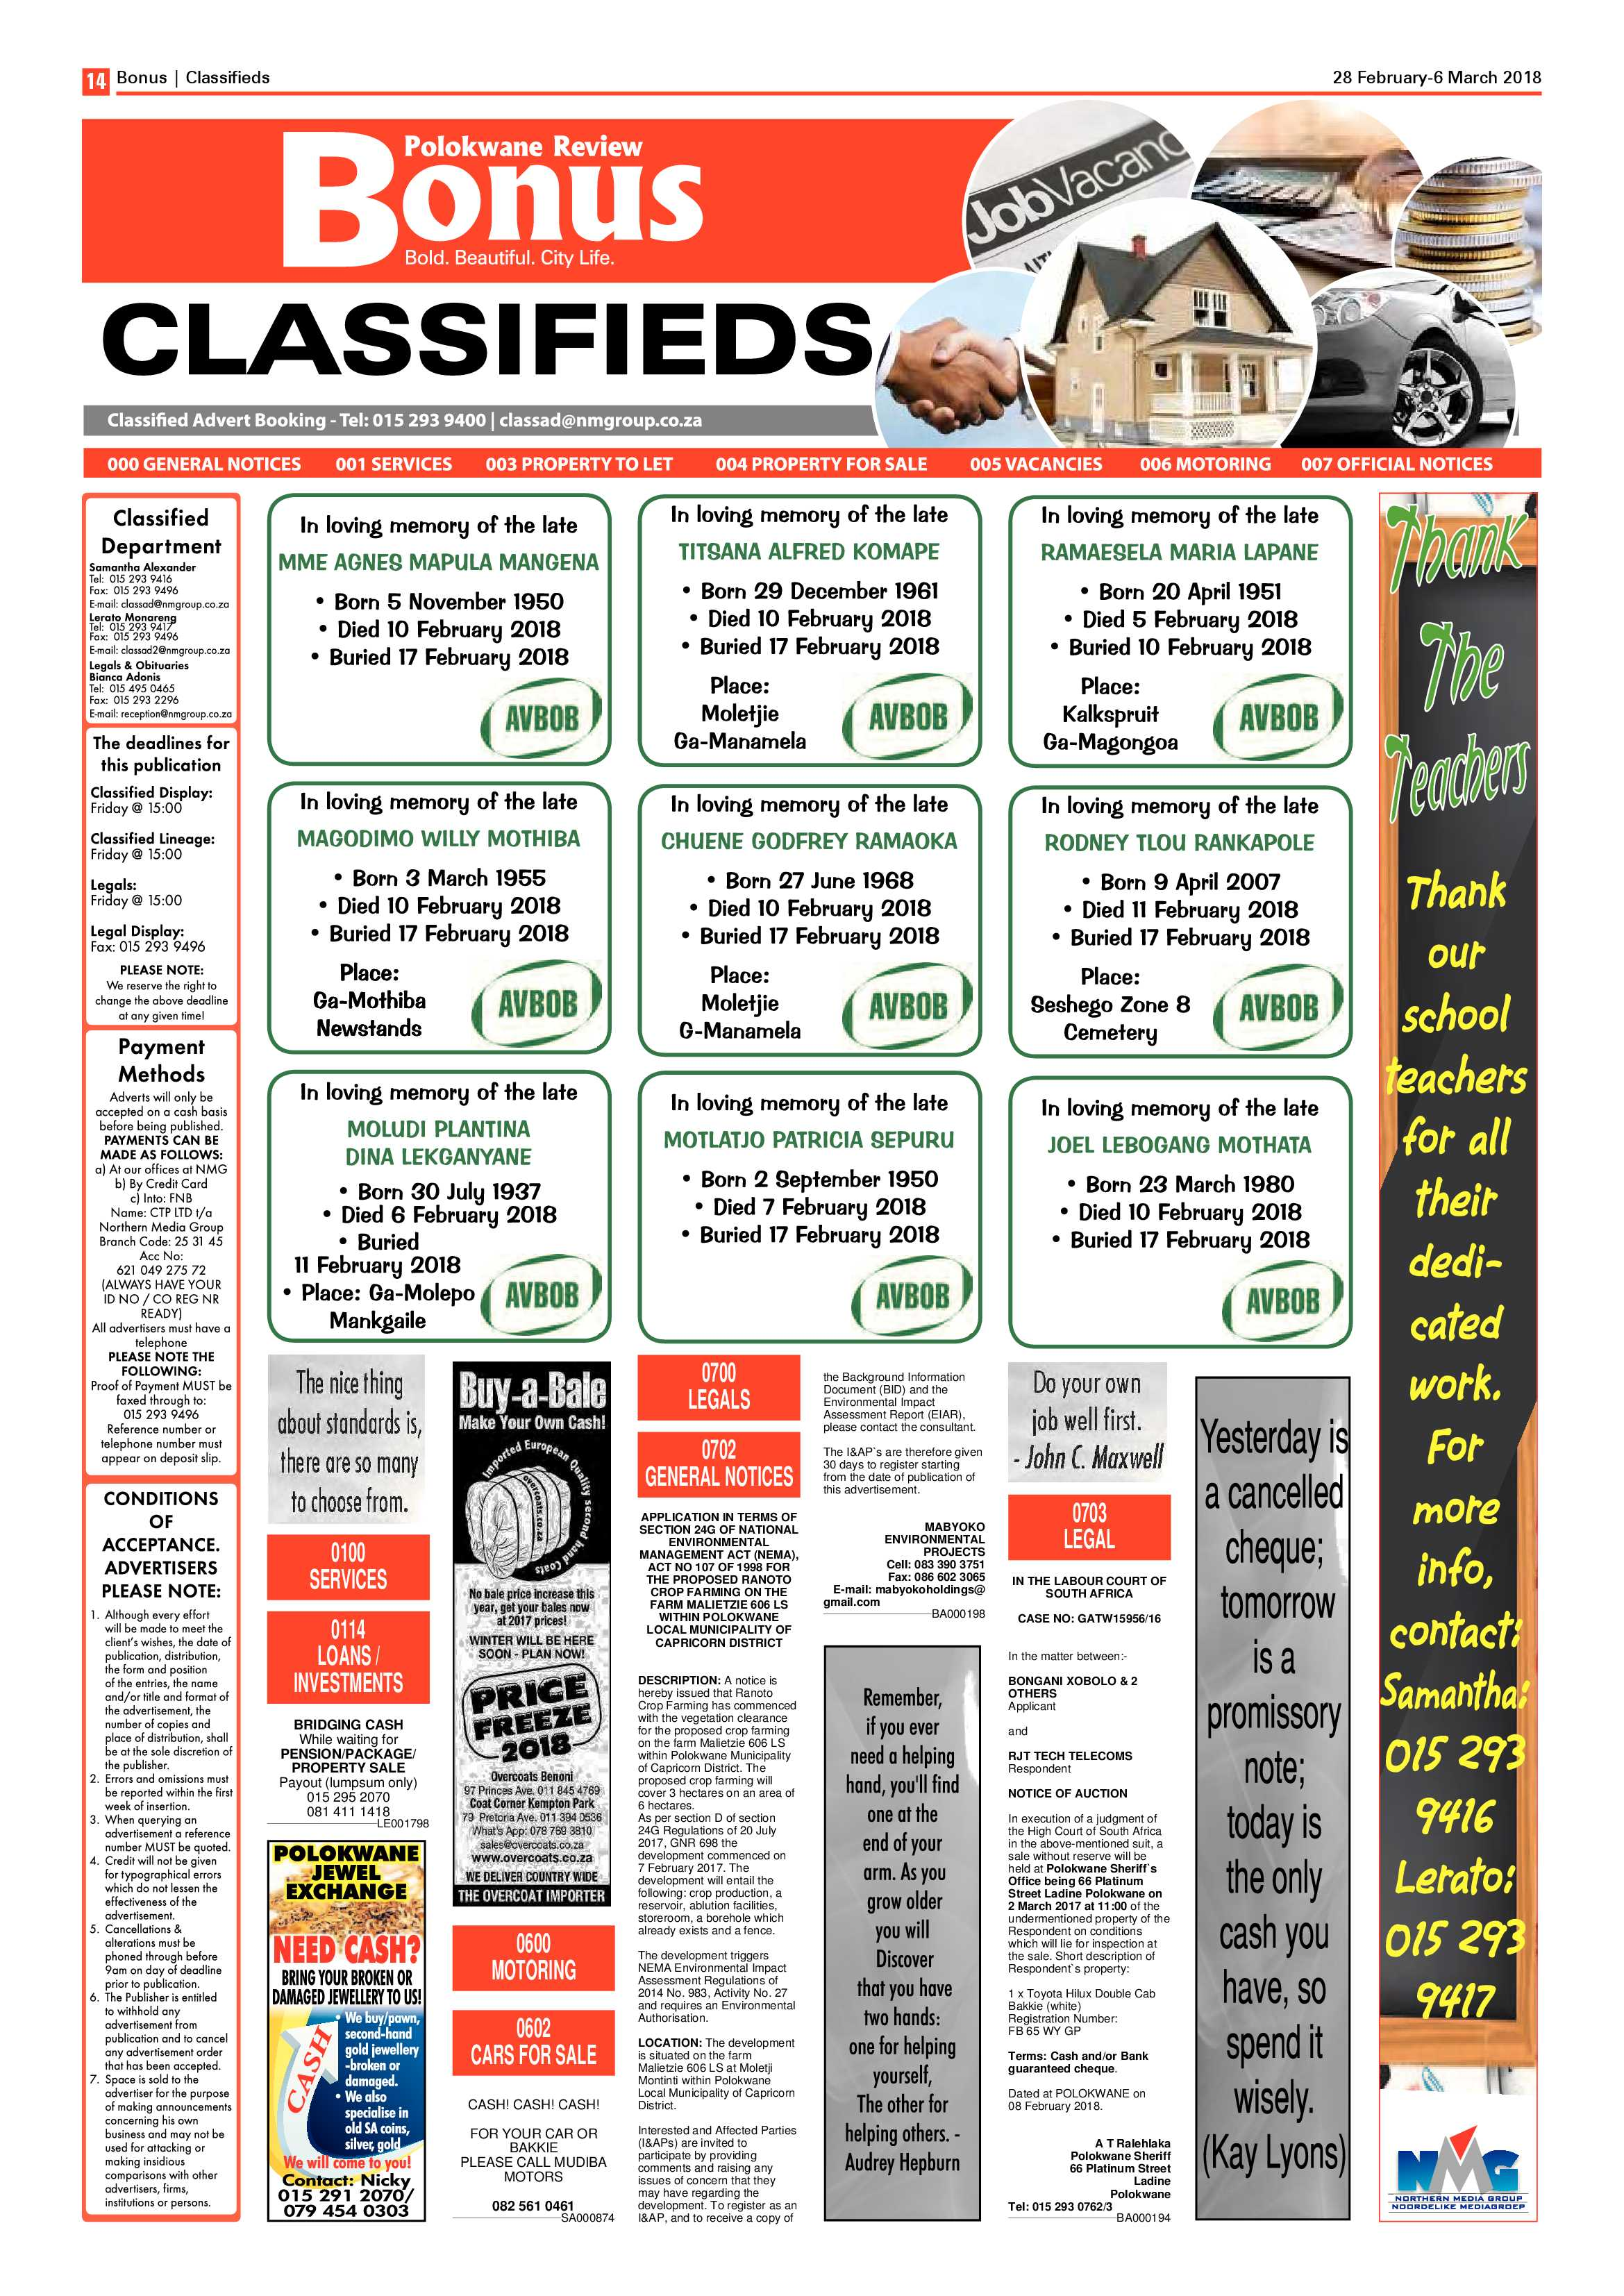 review-bonus-28-february-2018-epapers-page-14